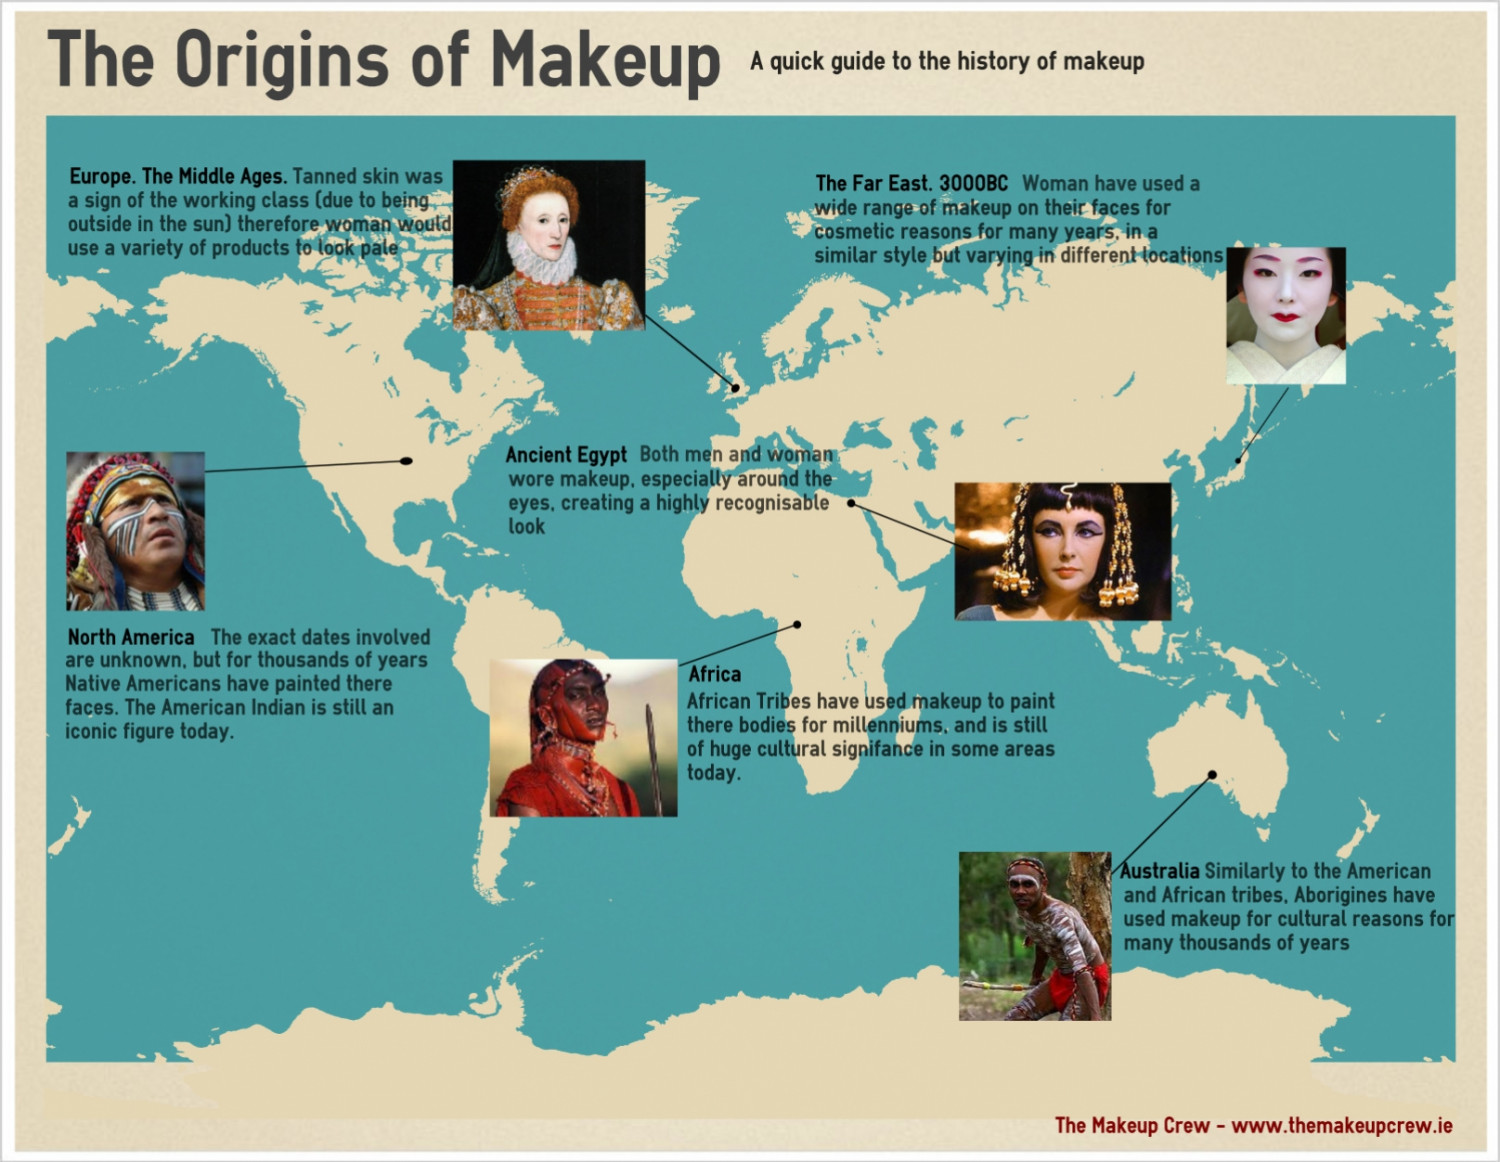 The Origins of Makeup Infographic